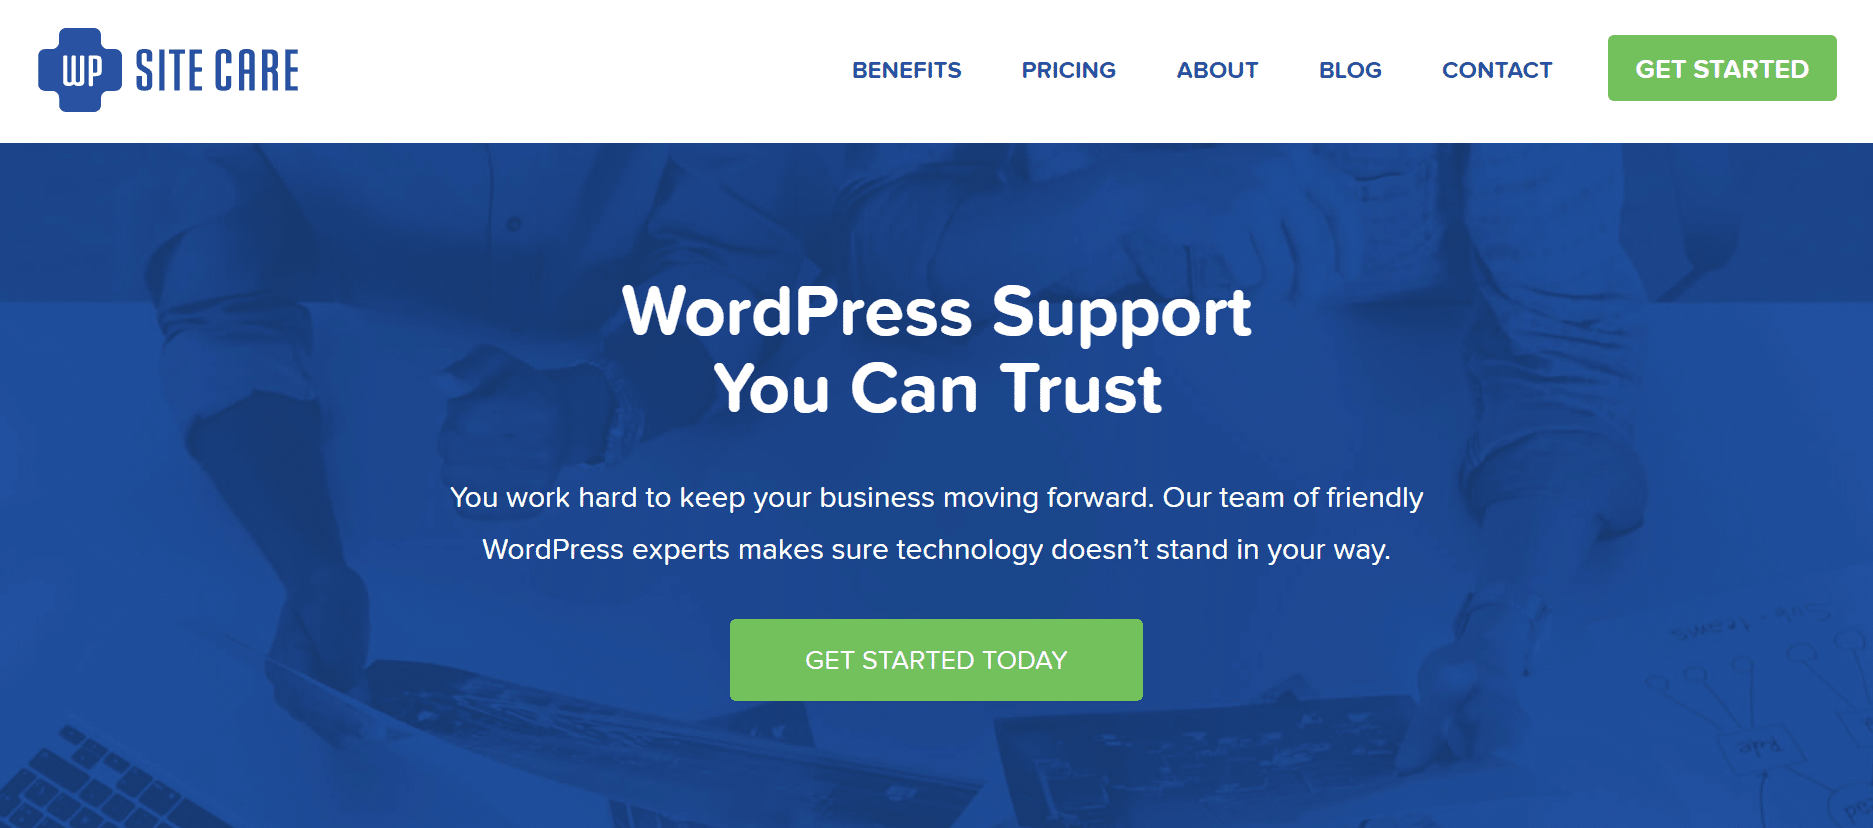 WP Site Care - WordPress maintenance and support service